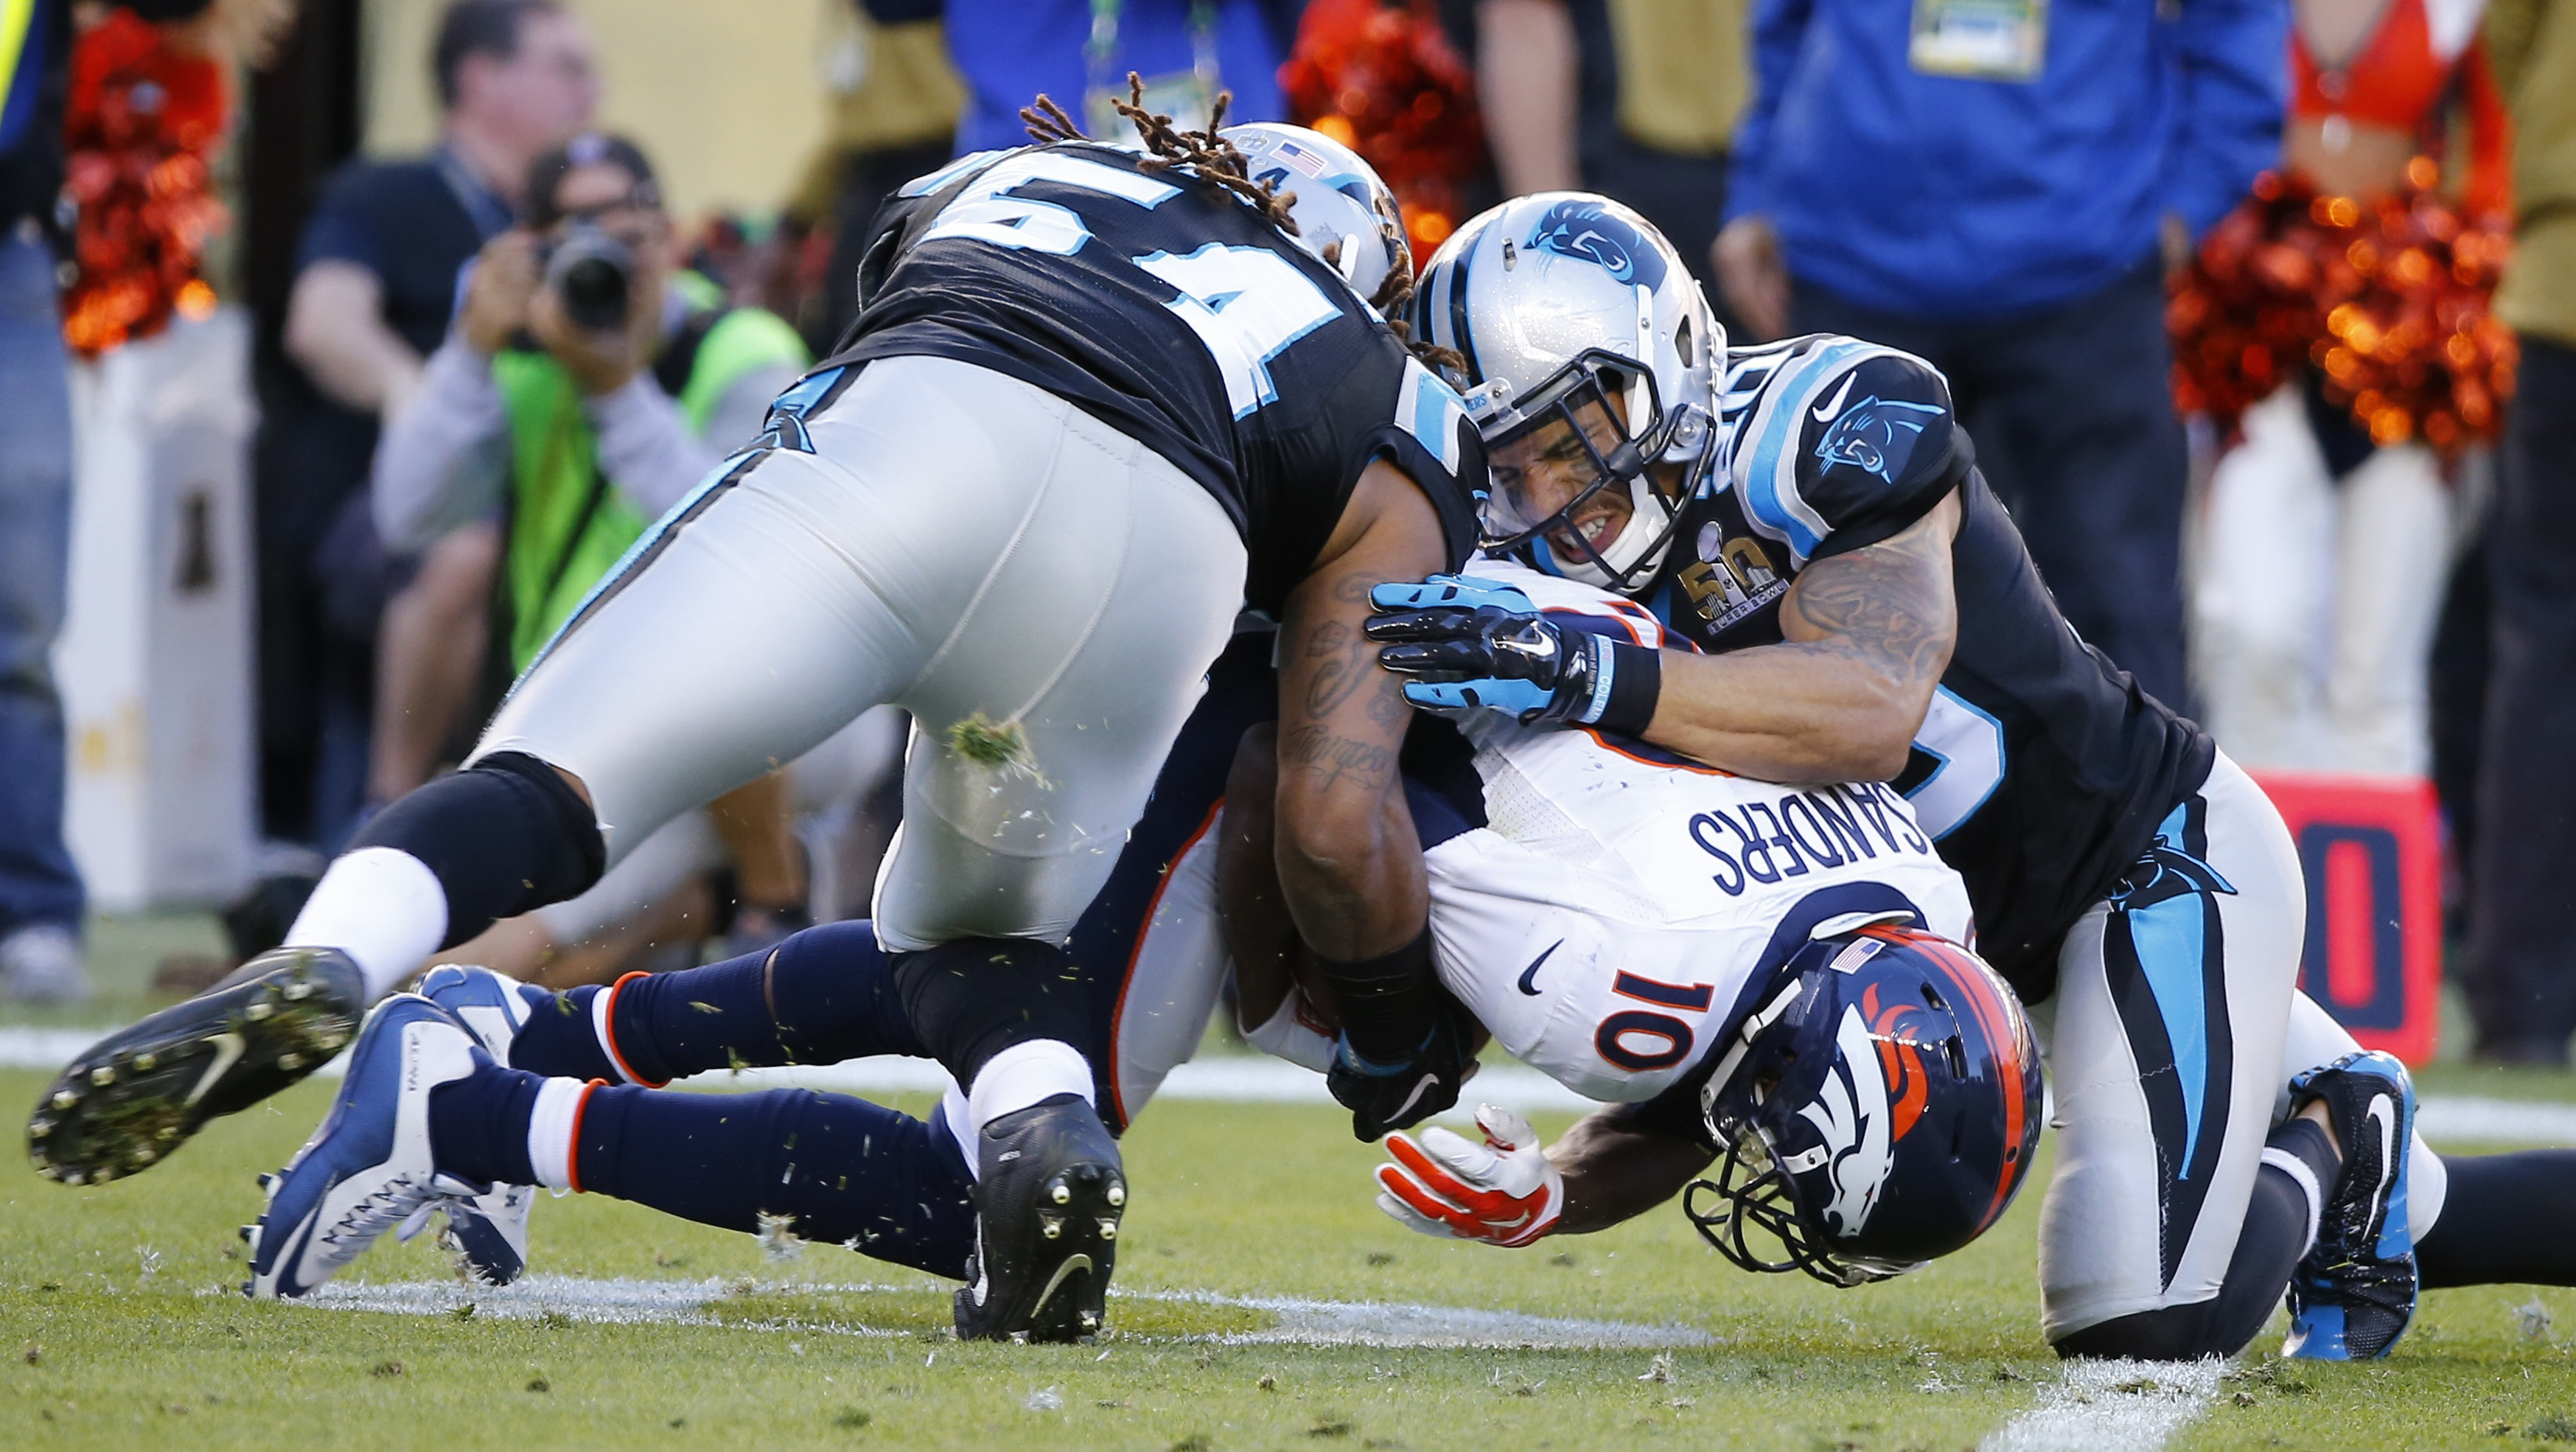 Denver Broncos' Sanders is tackled after a reception by Carolina Panthers' Thompson and Finnegan during the first quarter of the NFL's Super Bowl 50 football game in Santa Clara